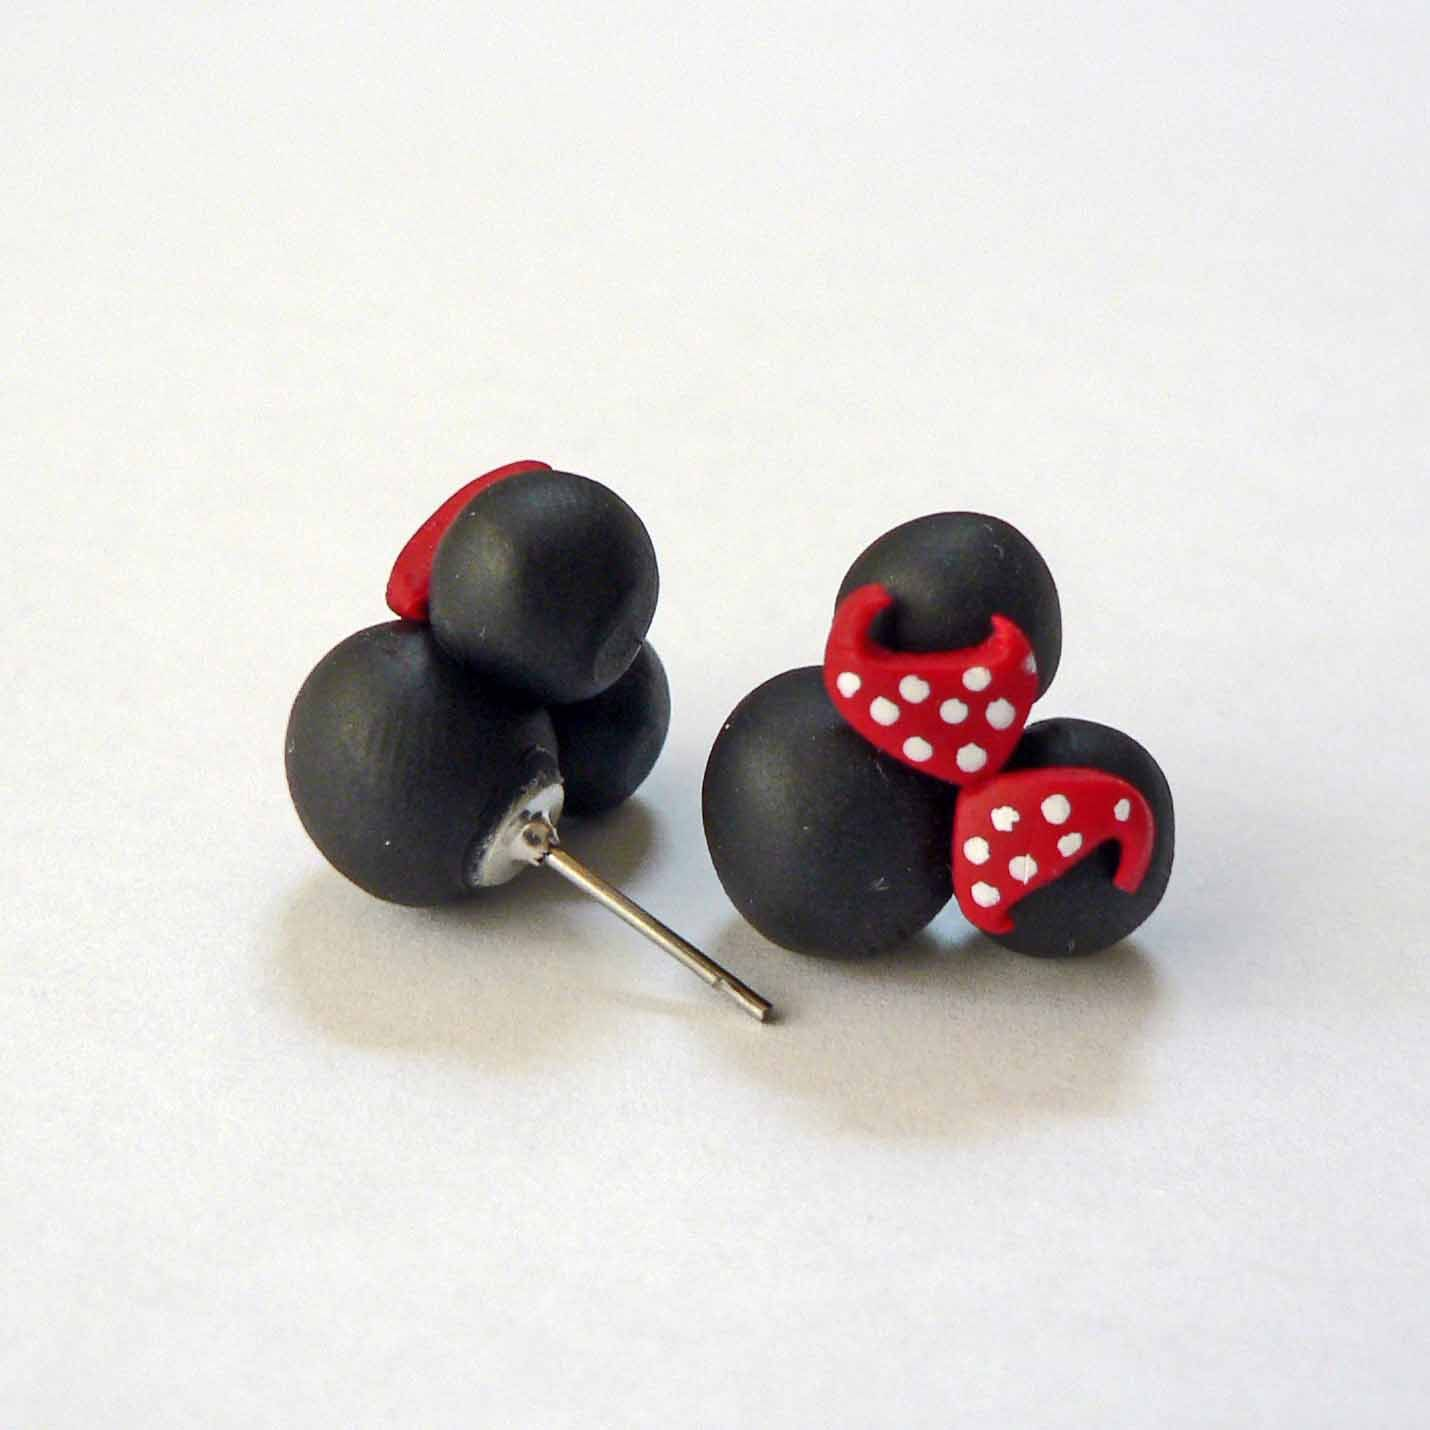 Minnie Mouse Inspired Earrings Hypoallergenic Surgical Steel Posts Children Toddler Kids Disney Small Tiny Red Polka Dot Bow